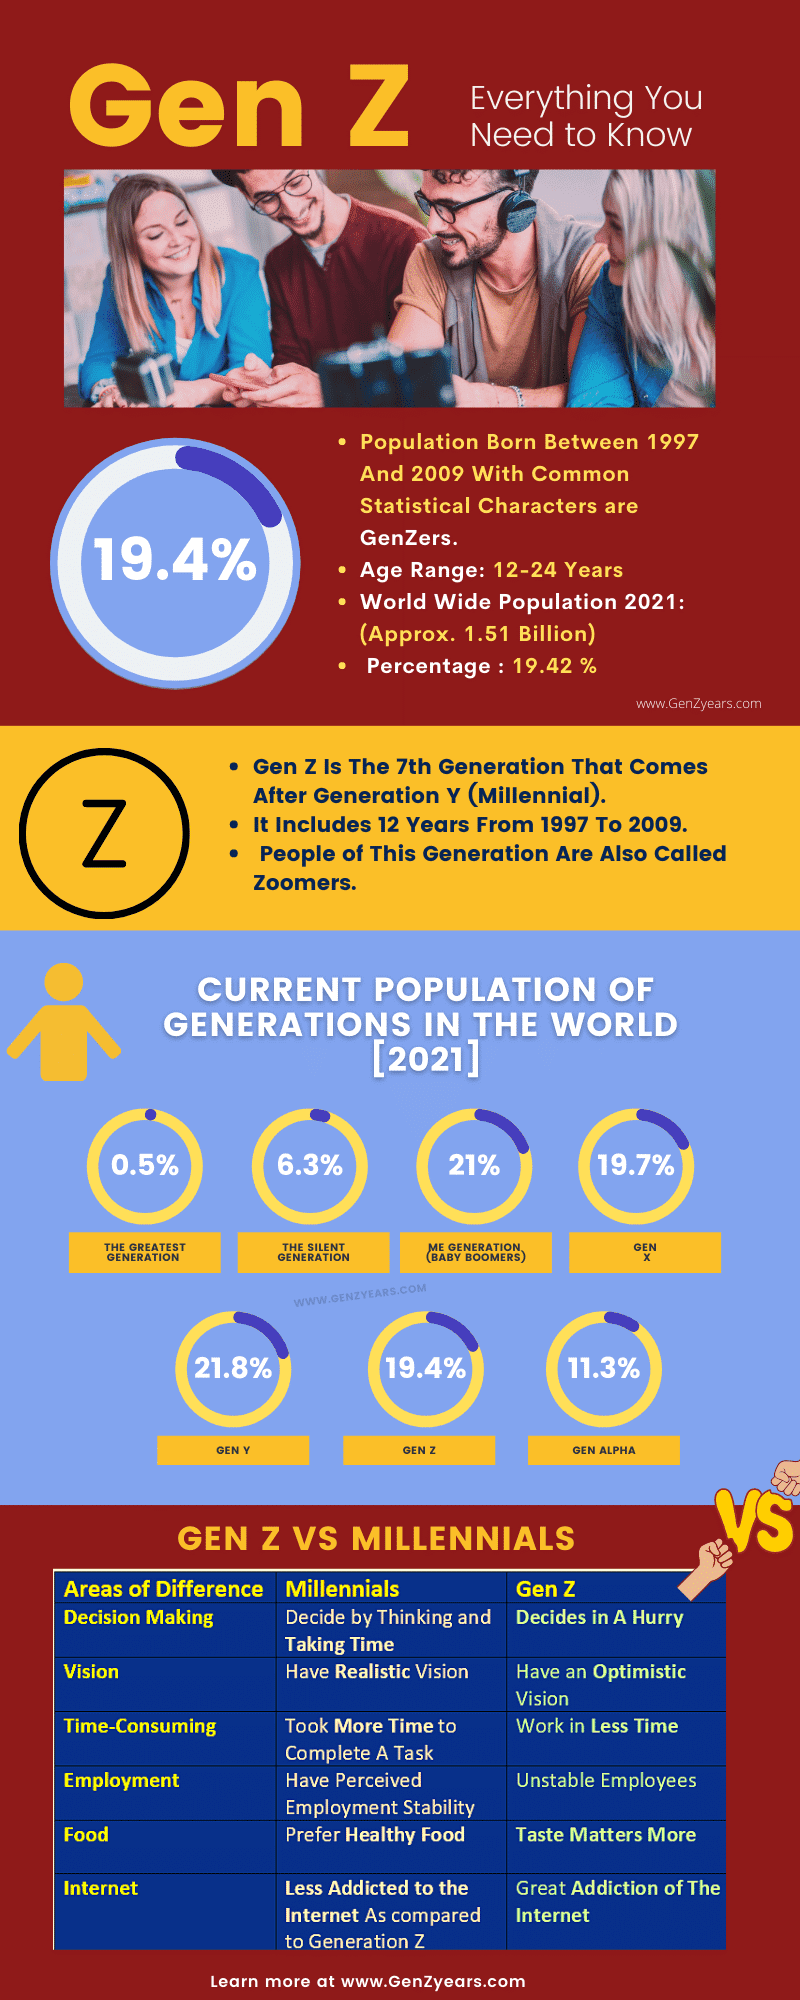 This is the infographical Presenation on Generation Z Showing What is Gen Z, Gen Z Latest Stats and Current Population and Percentage and Gen Z V Millennials